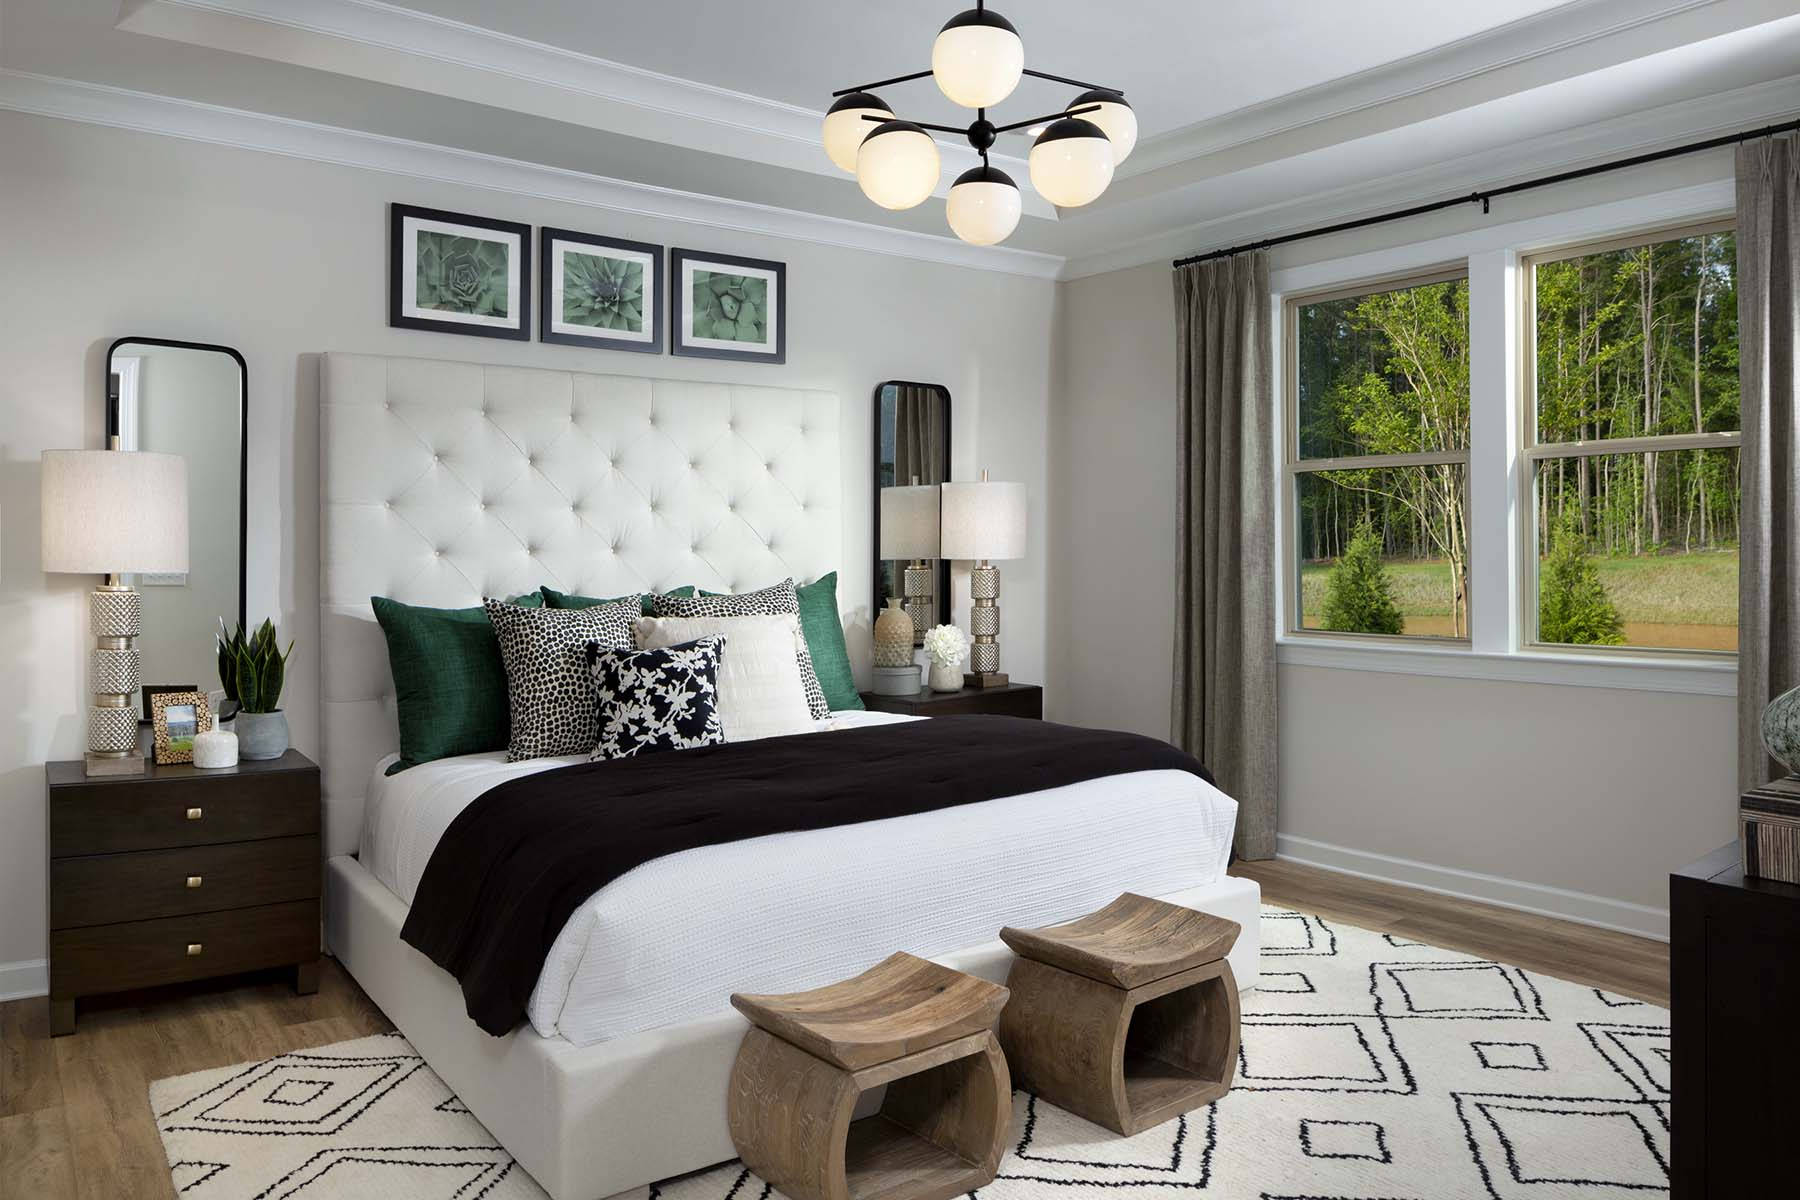 Presley Plan Bedroom at Sonata at Mint Hill in Mint Hill North Carolina by Mattamy Homes